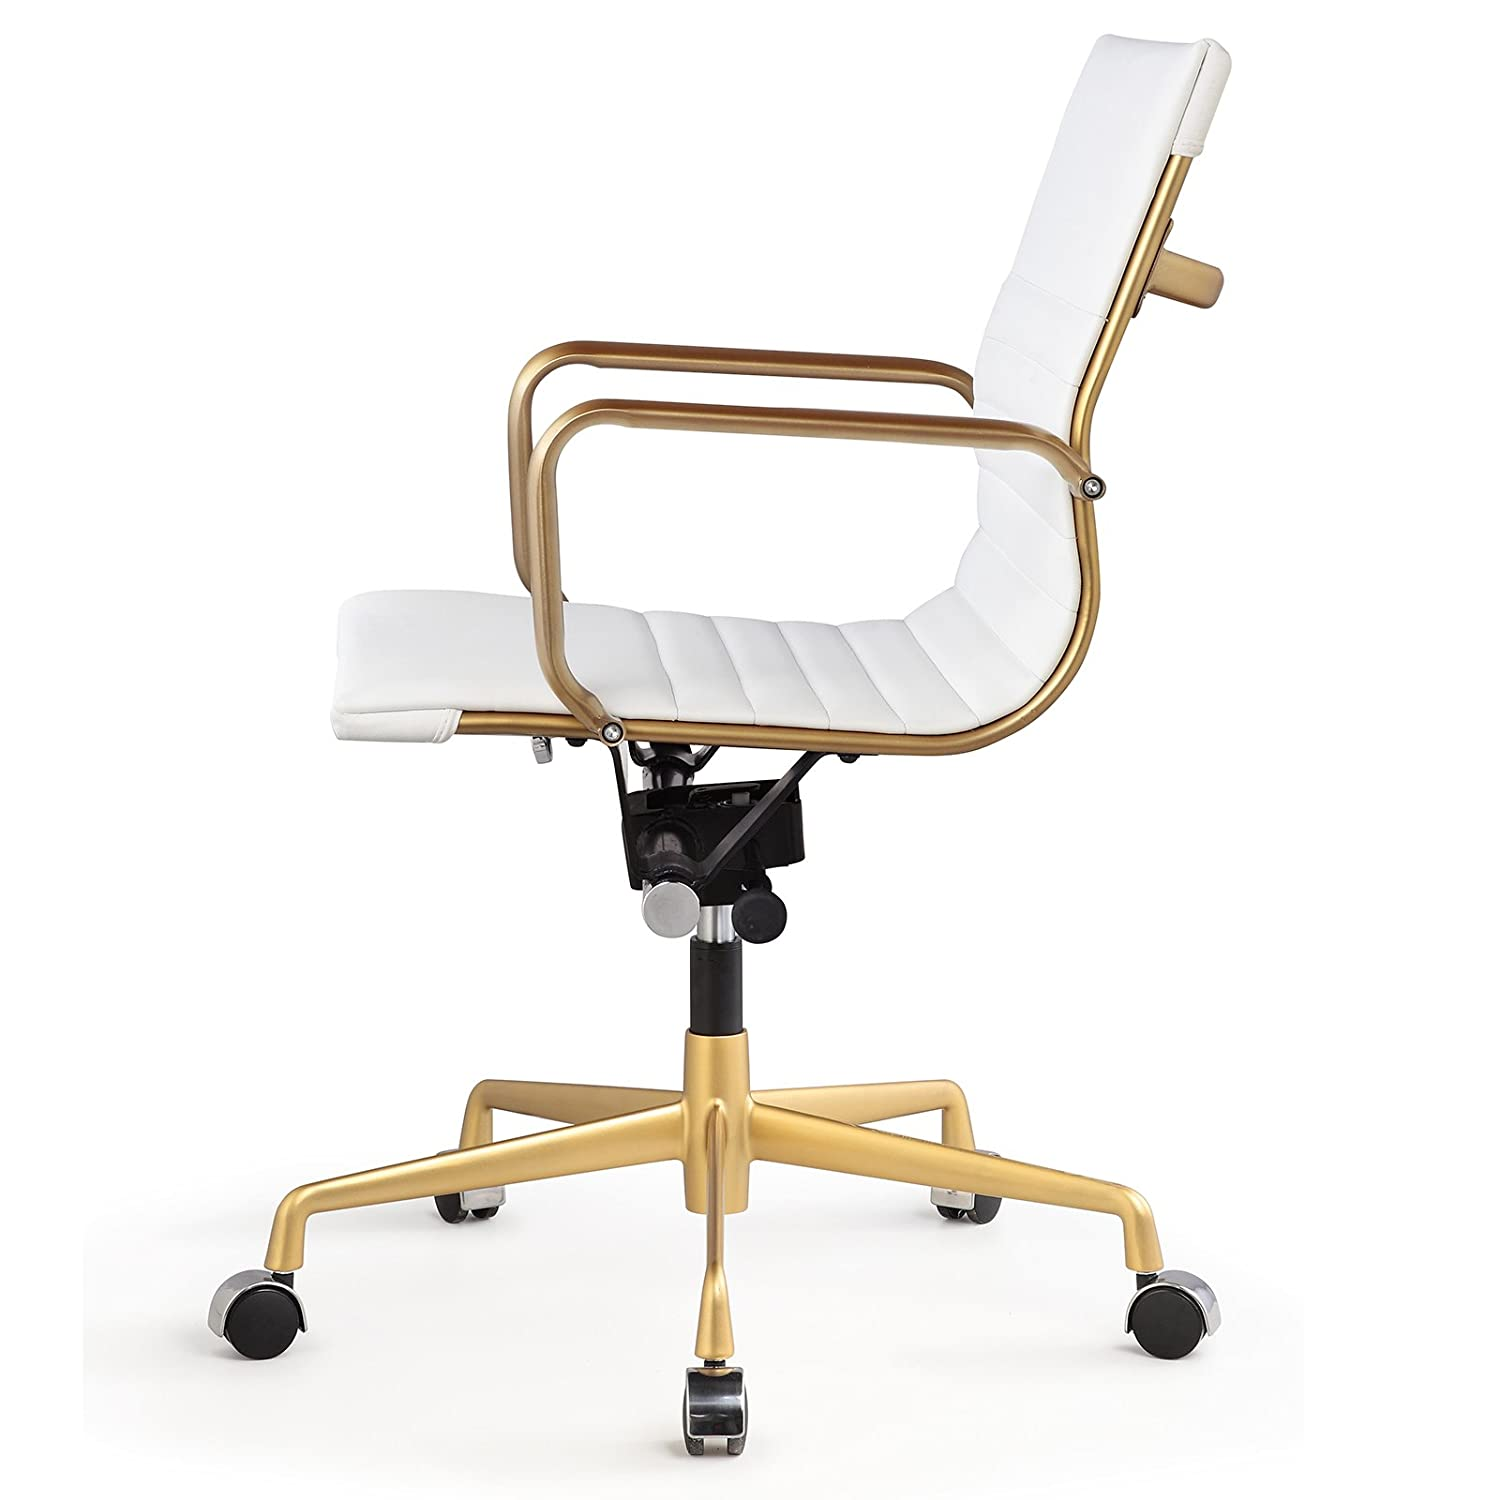 product mesh overstock seat products chair with riley star free home and back shipping today garden white office